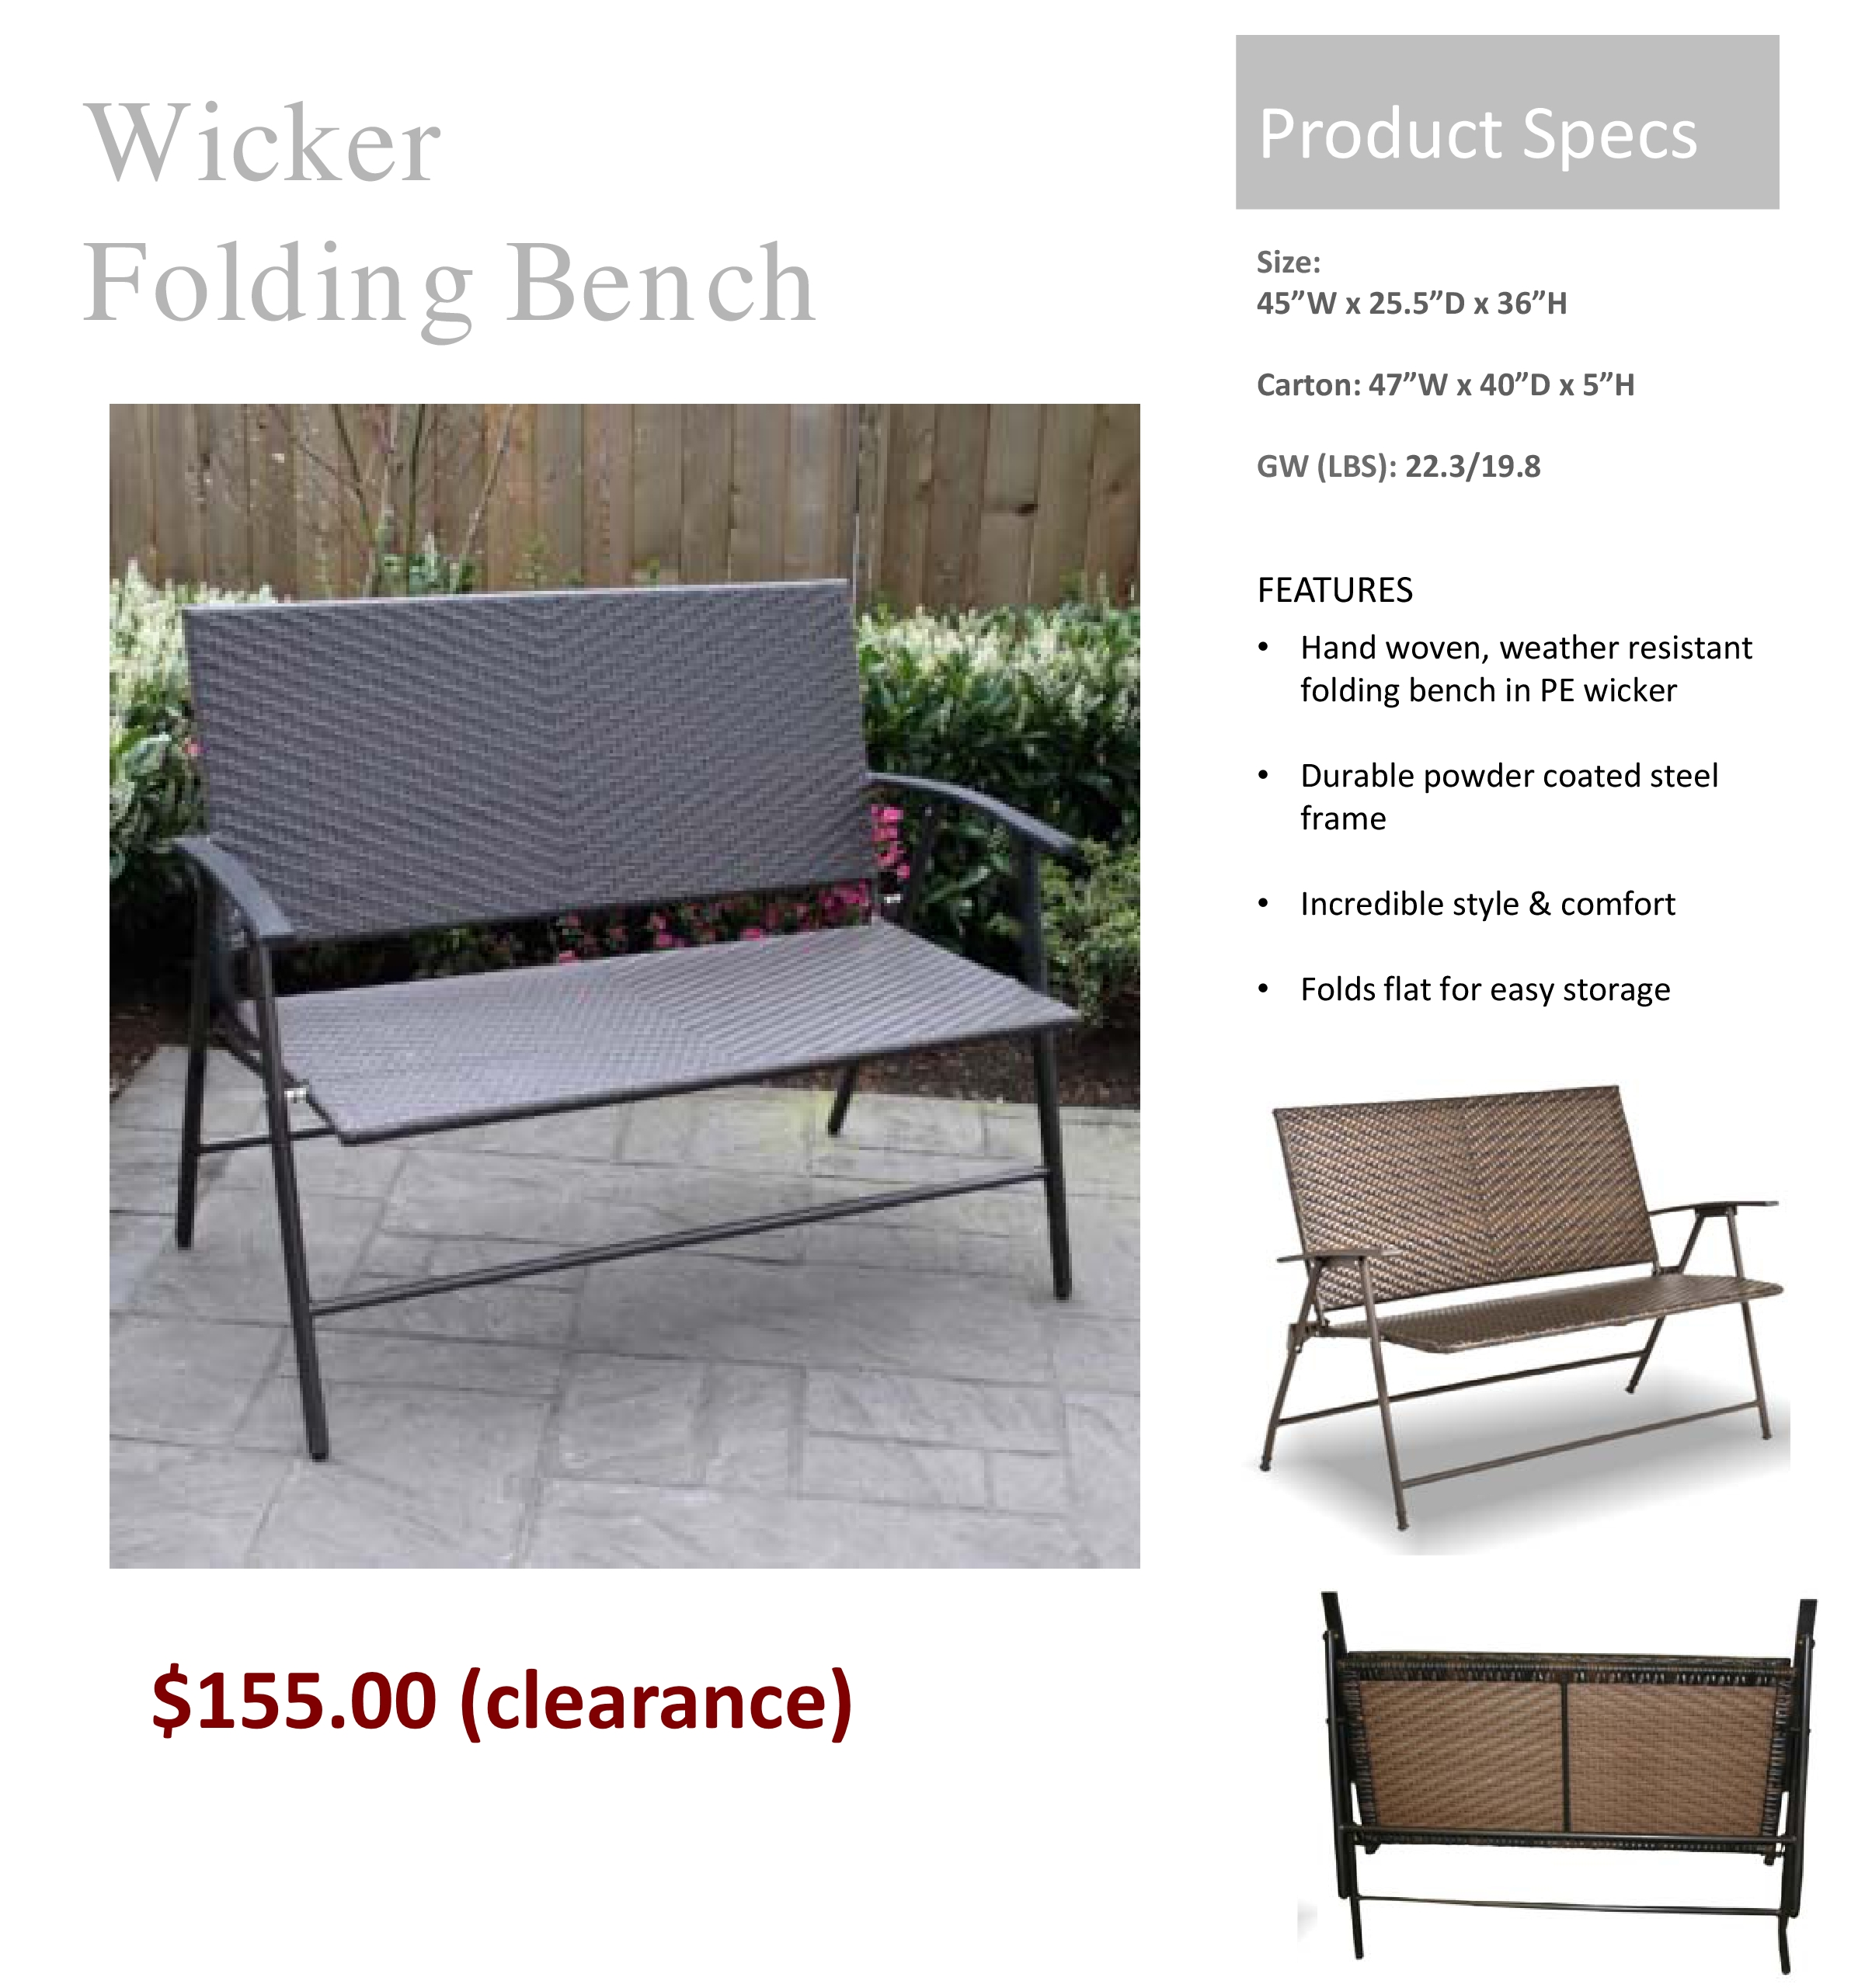 Deck home and patio inc budget friendly patio furniture for Budget friendly furniture